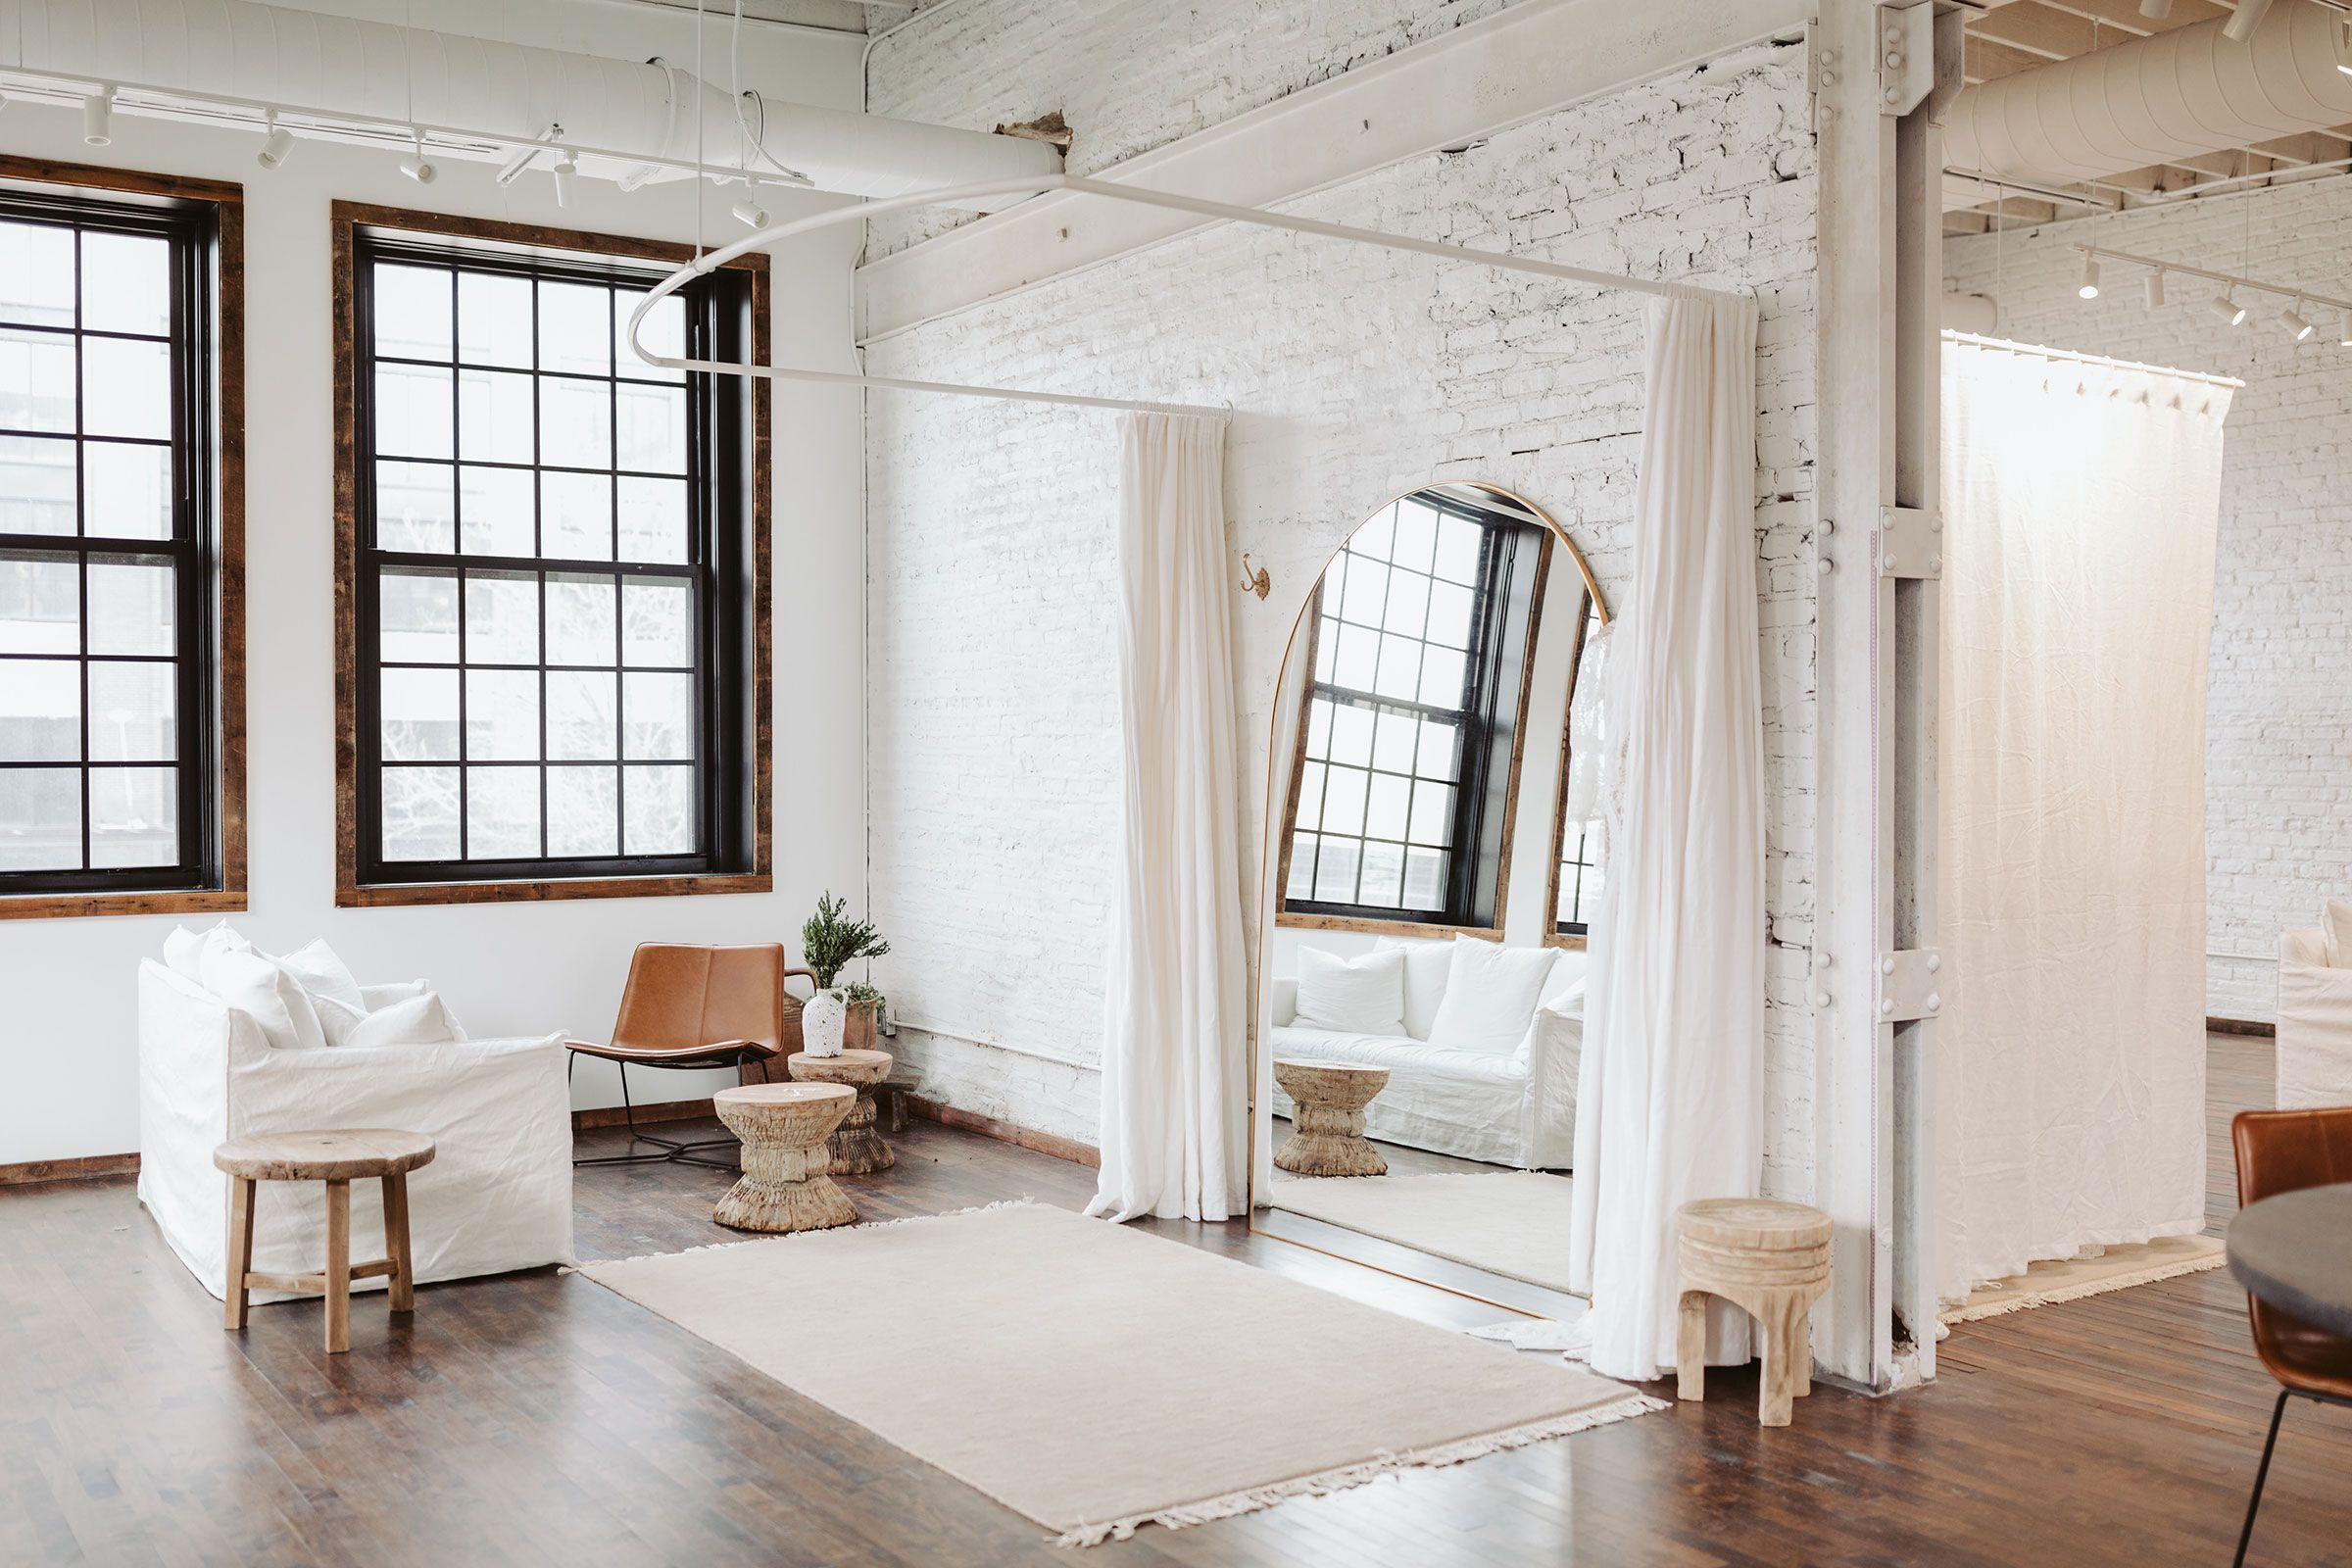 Chicago Showroom in 2020 Showroom, Home decor